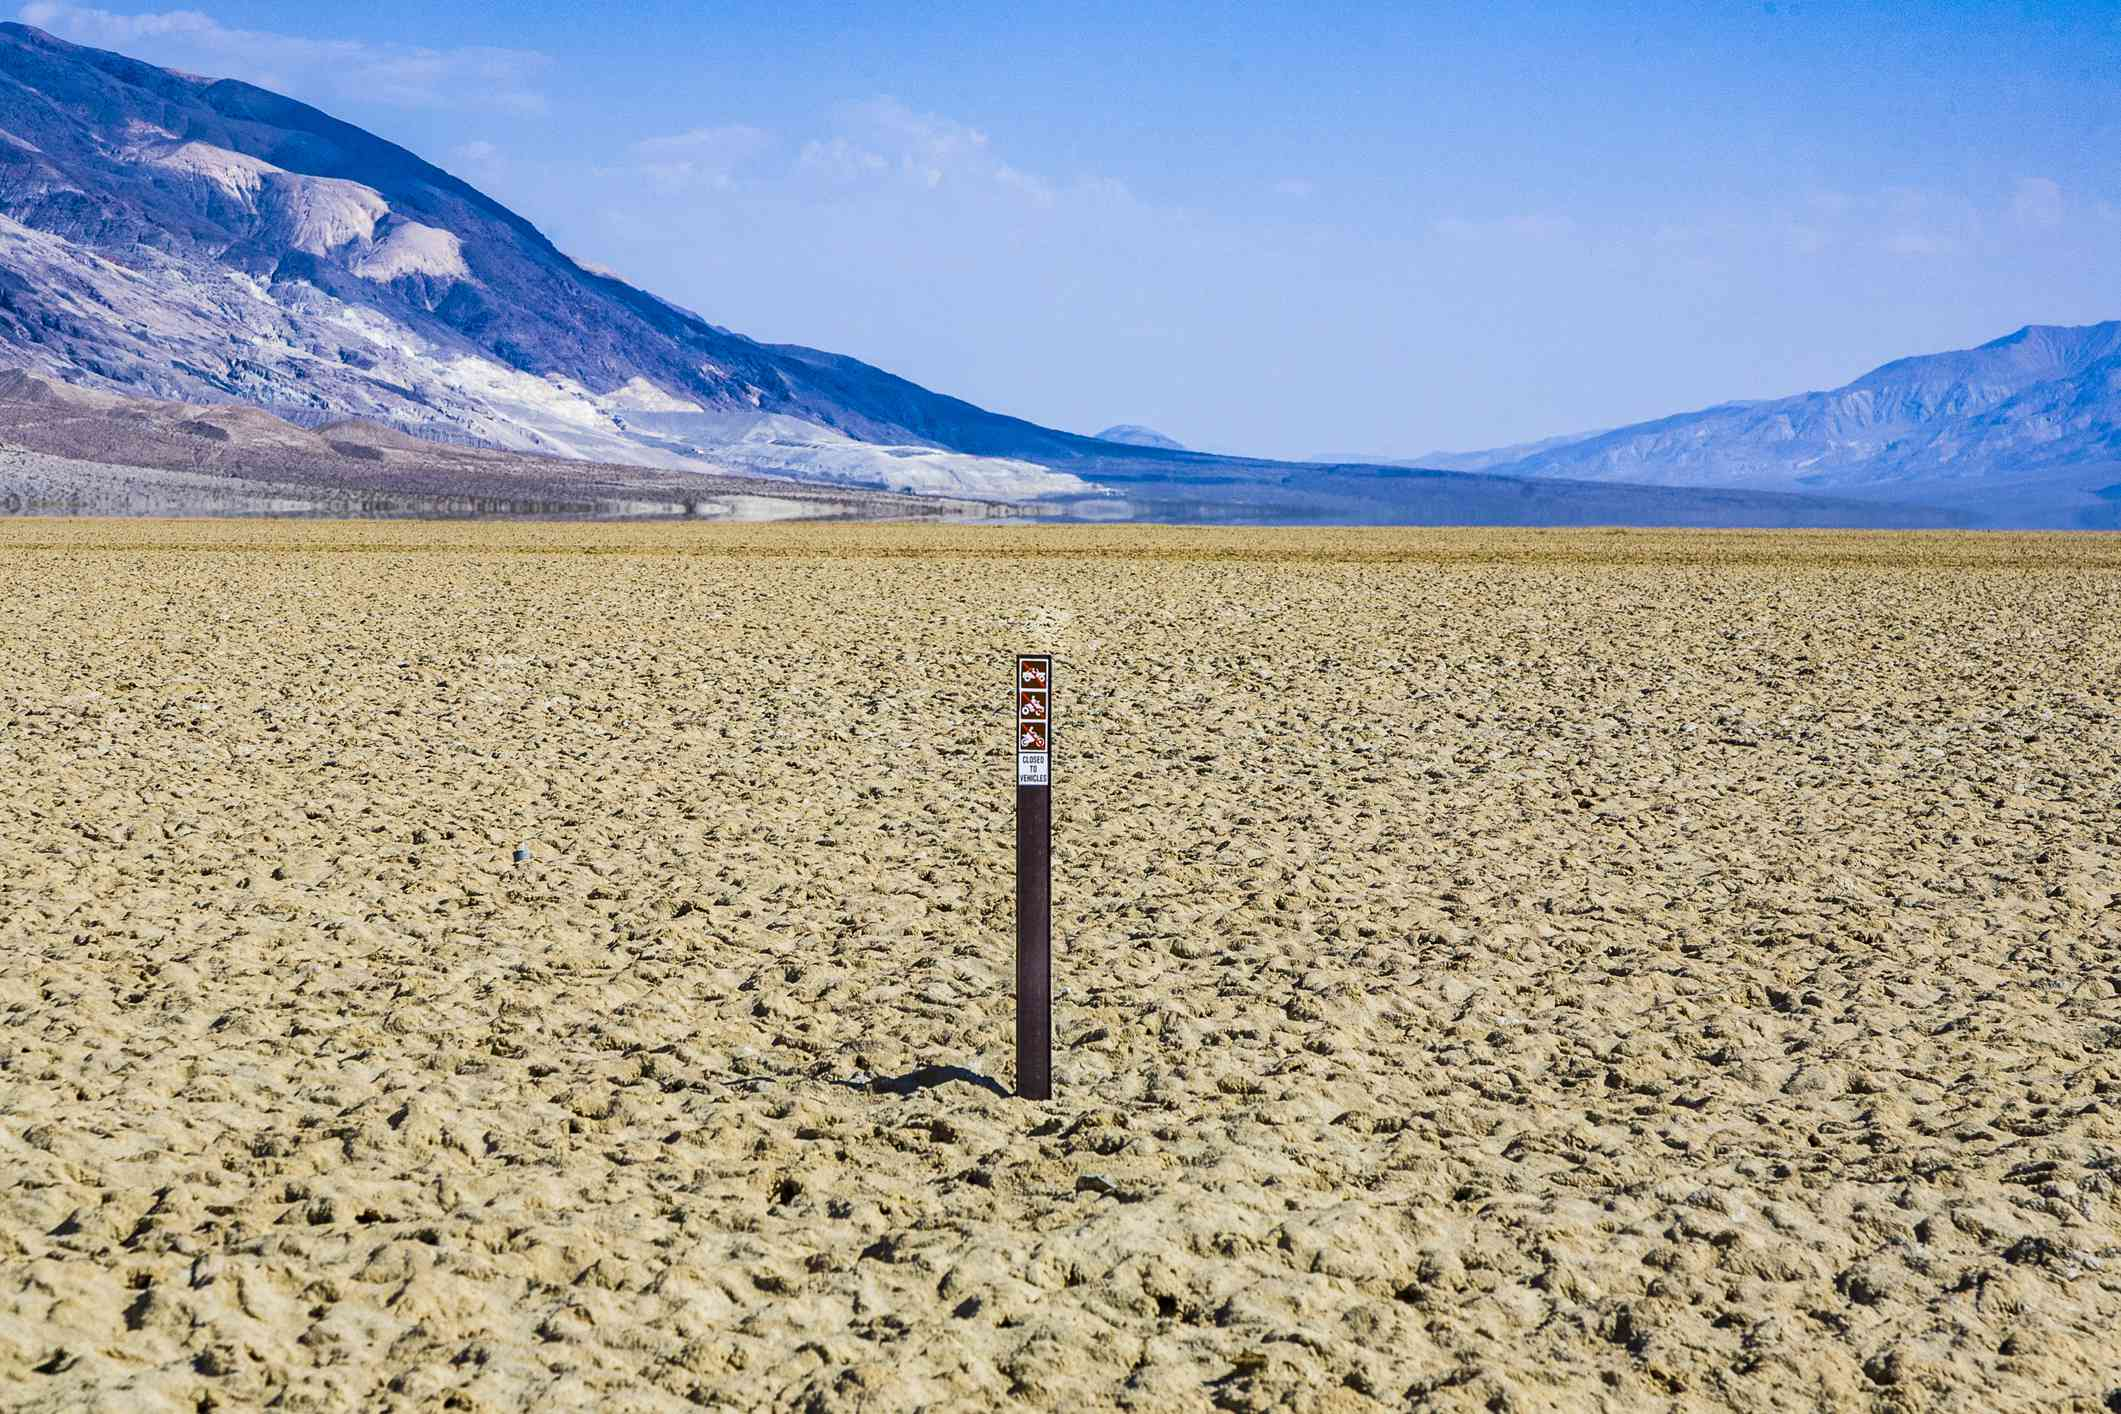 A dried up lake with a sign in the middle